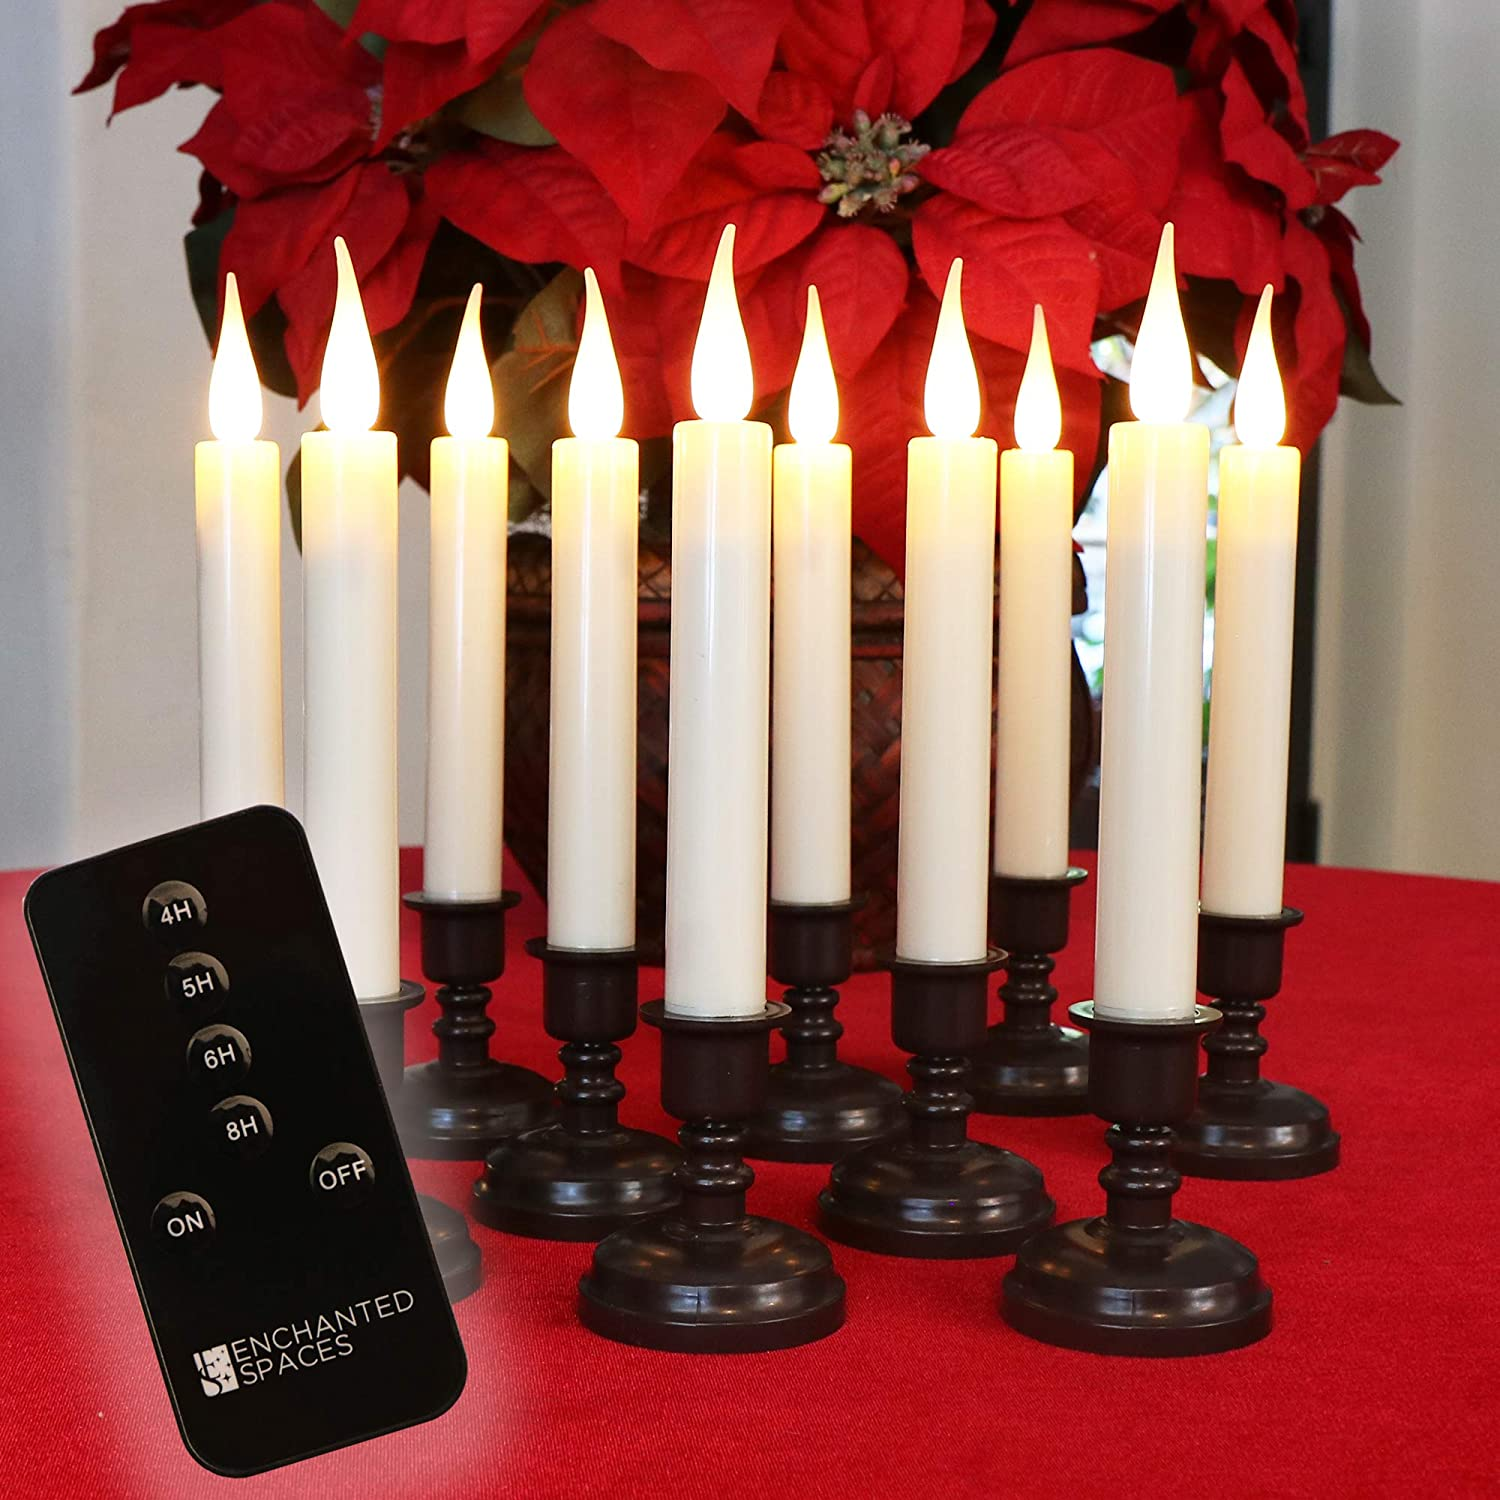 Set of 10 Flameless Battery Operated LED Ivory Taper Window Candles with Daily Timer, Removable Bronze Candle Stands, Window Suction Cups, Remote Control and 20 AA Batteries Included